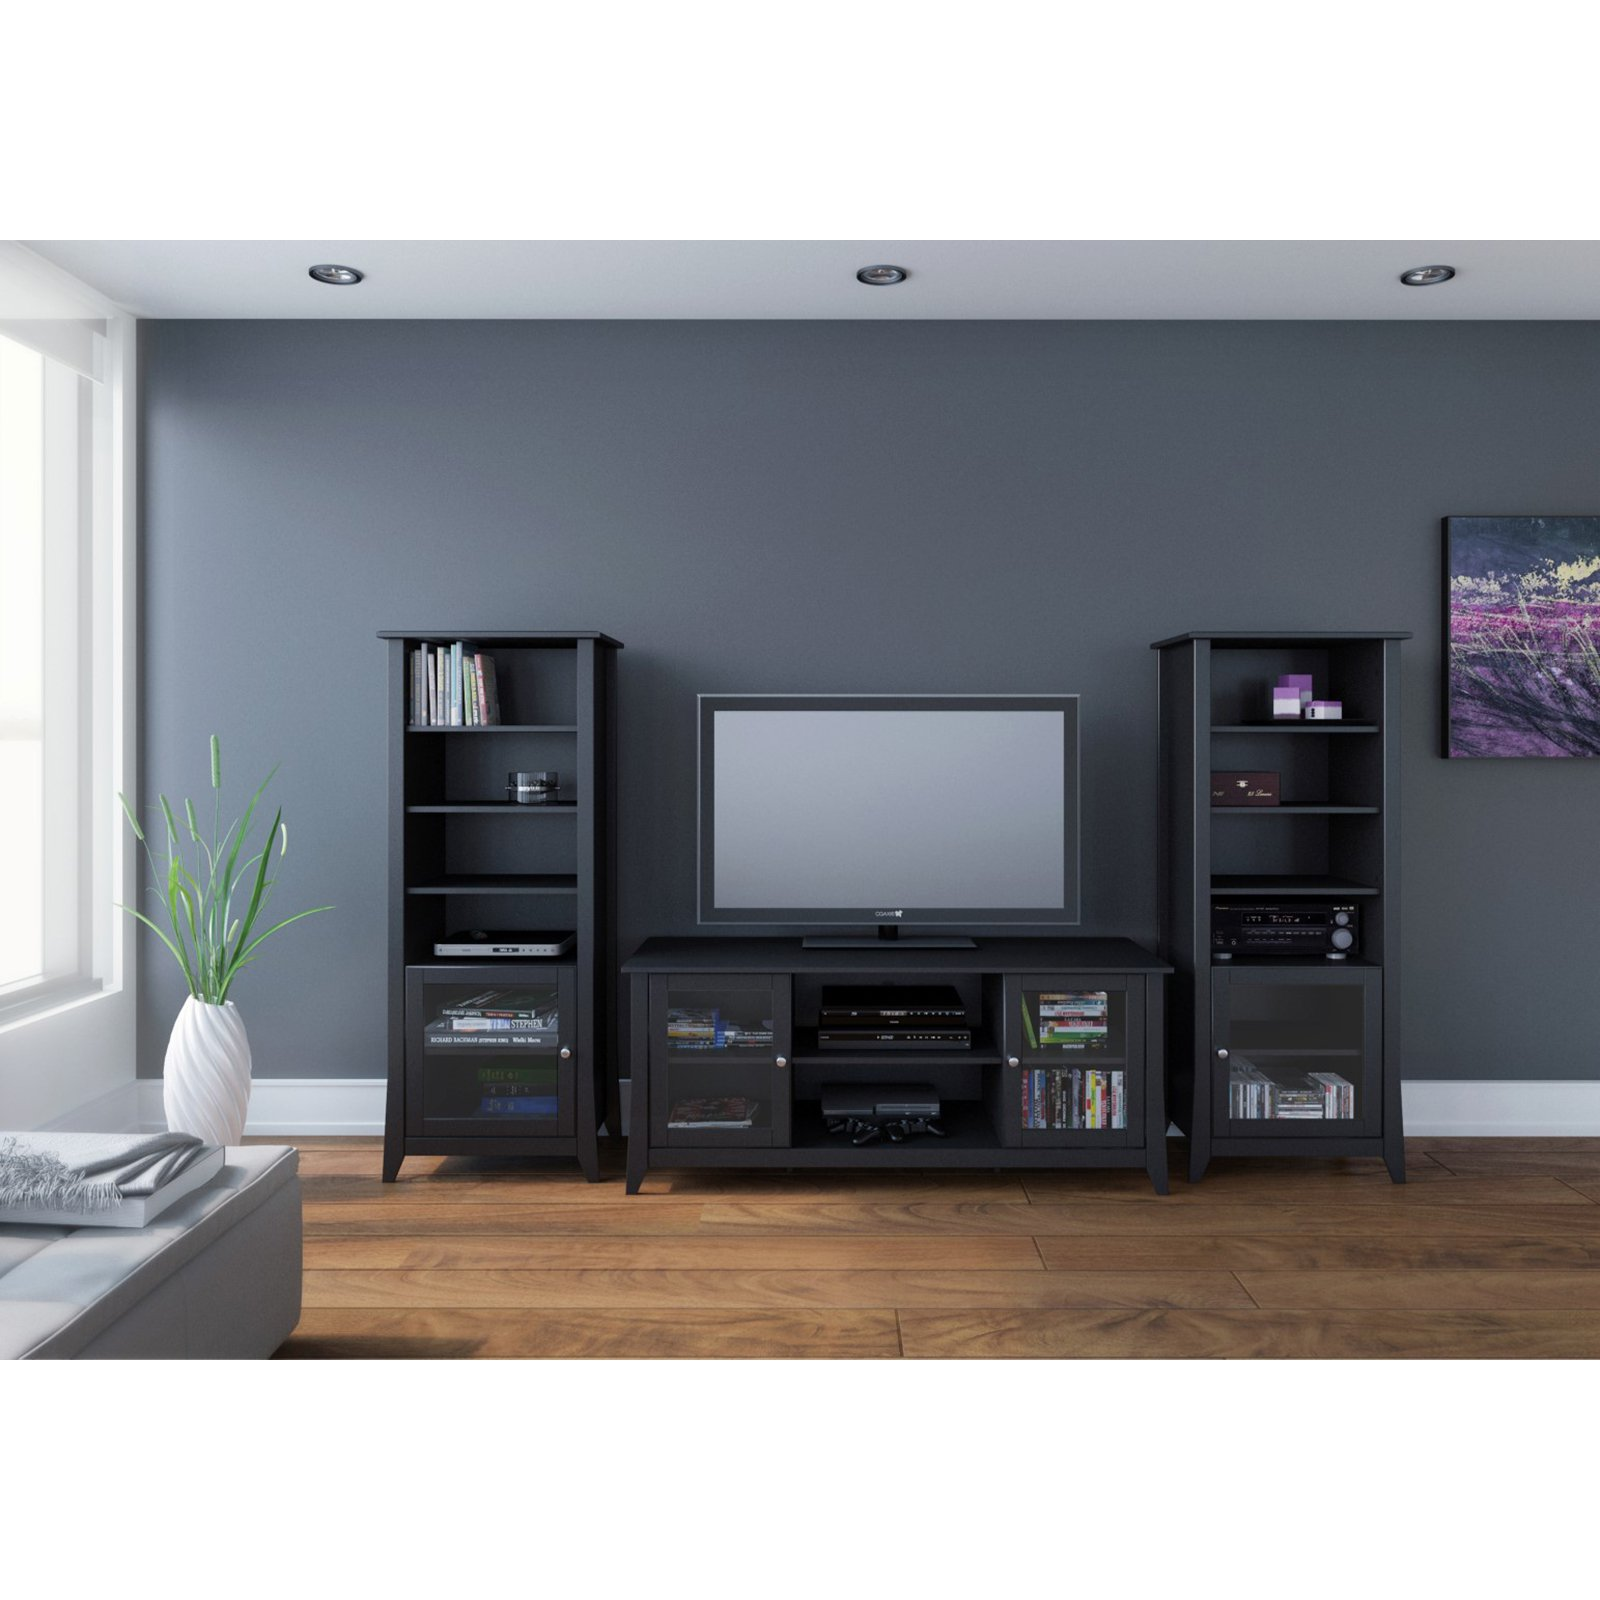 Megalak Finition Tuxedo 58 in. TV Console with Curio Cabinet Piers - Black